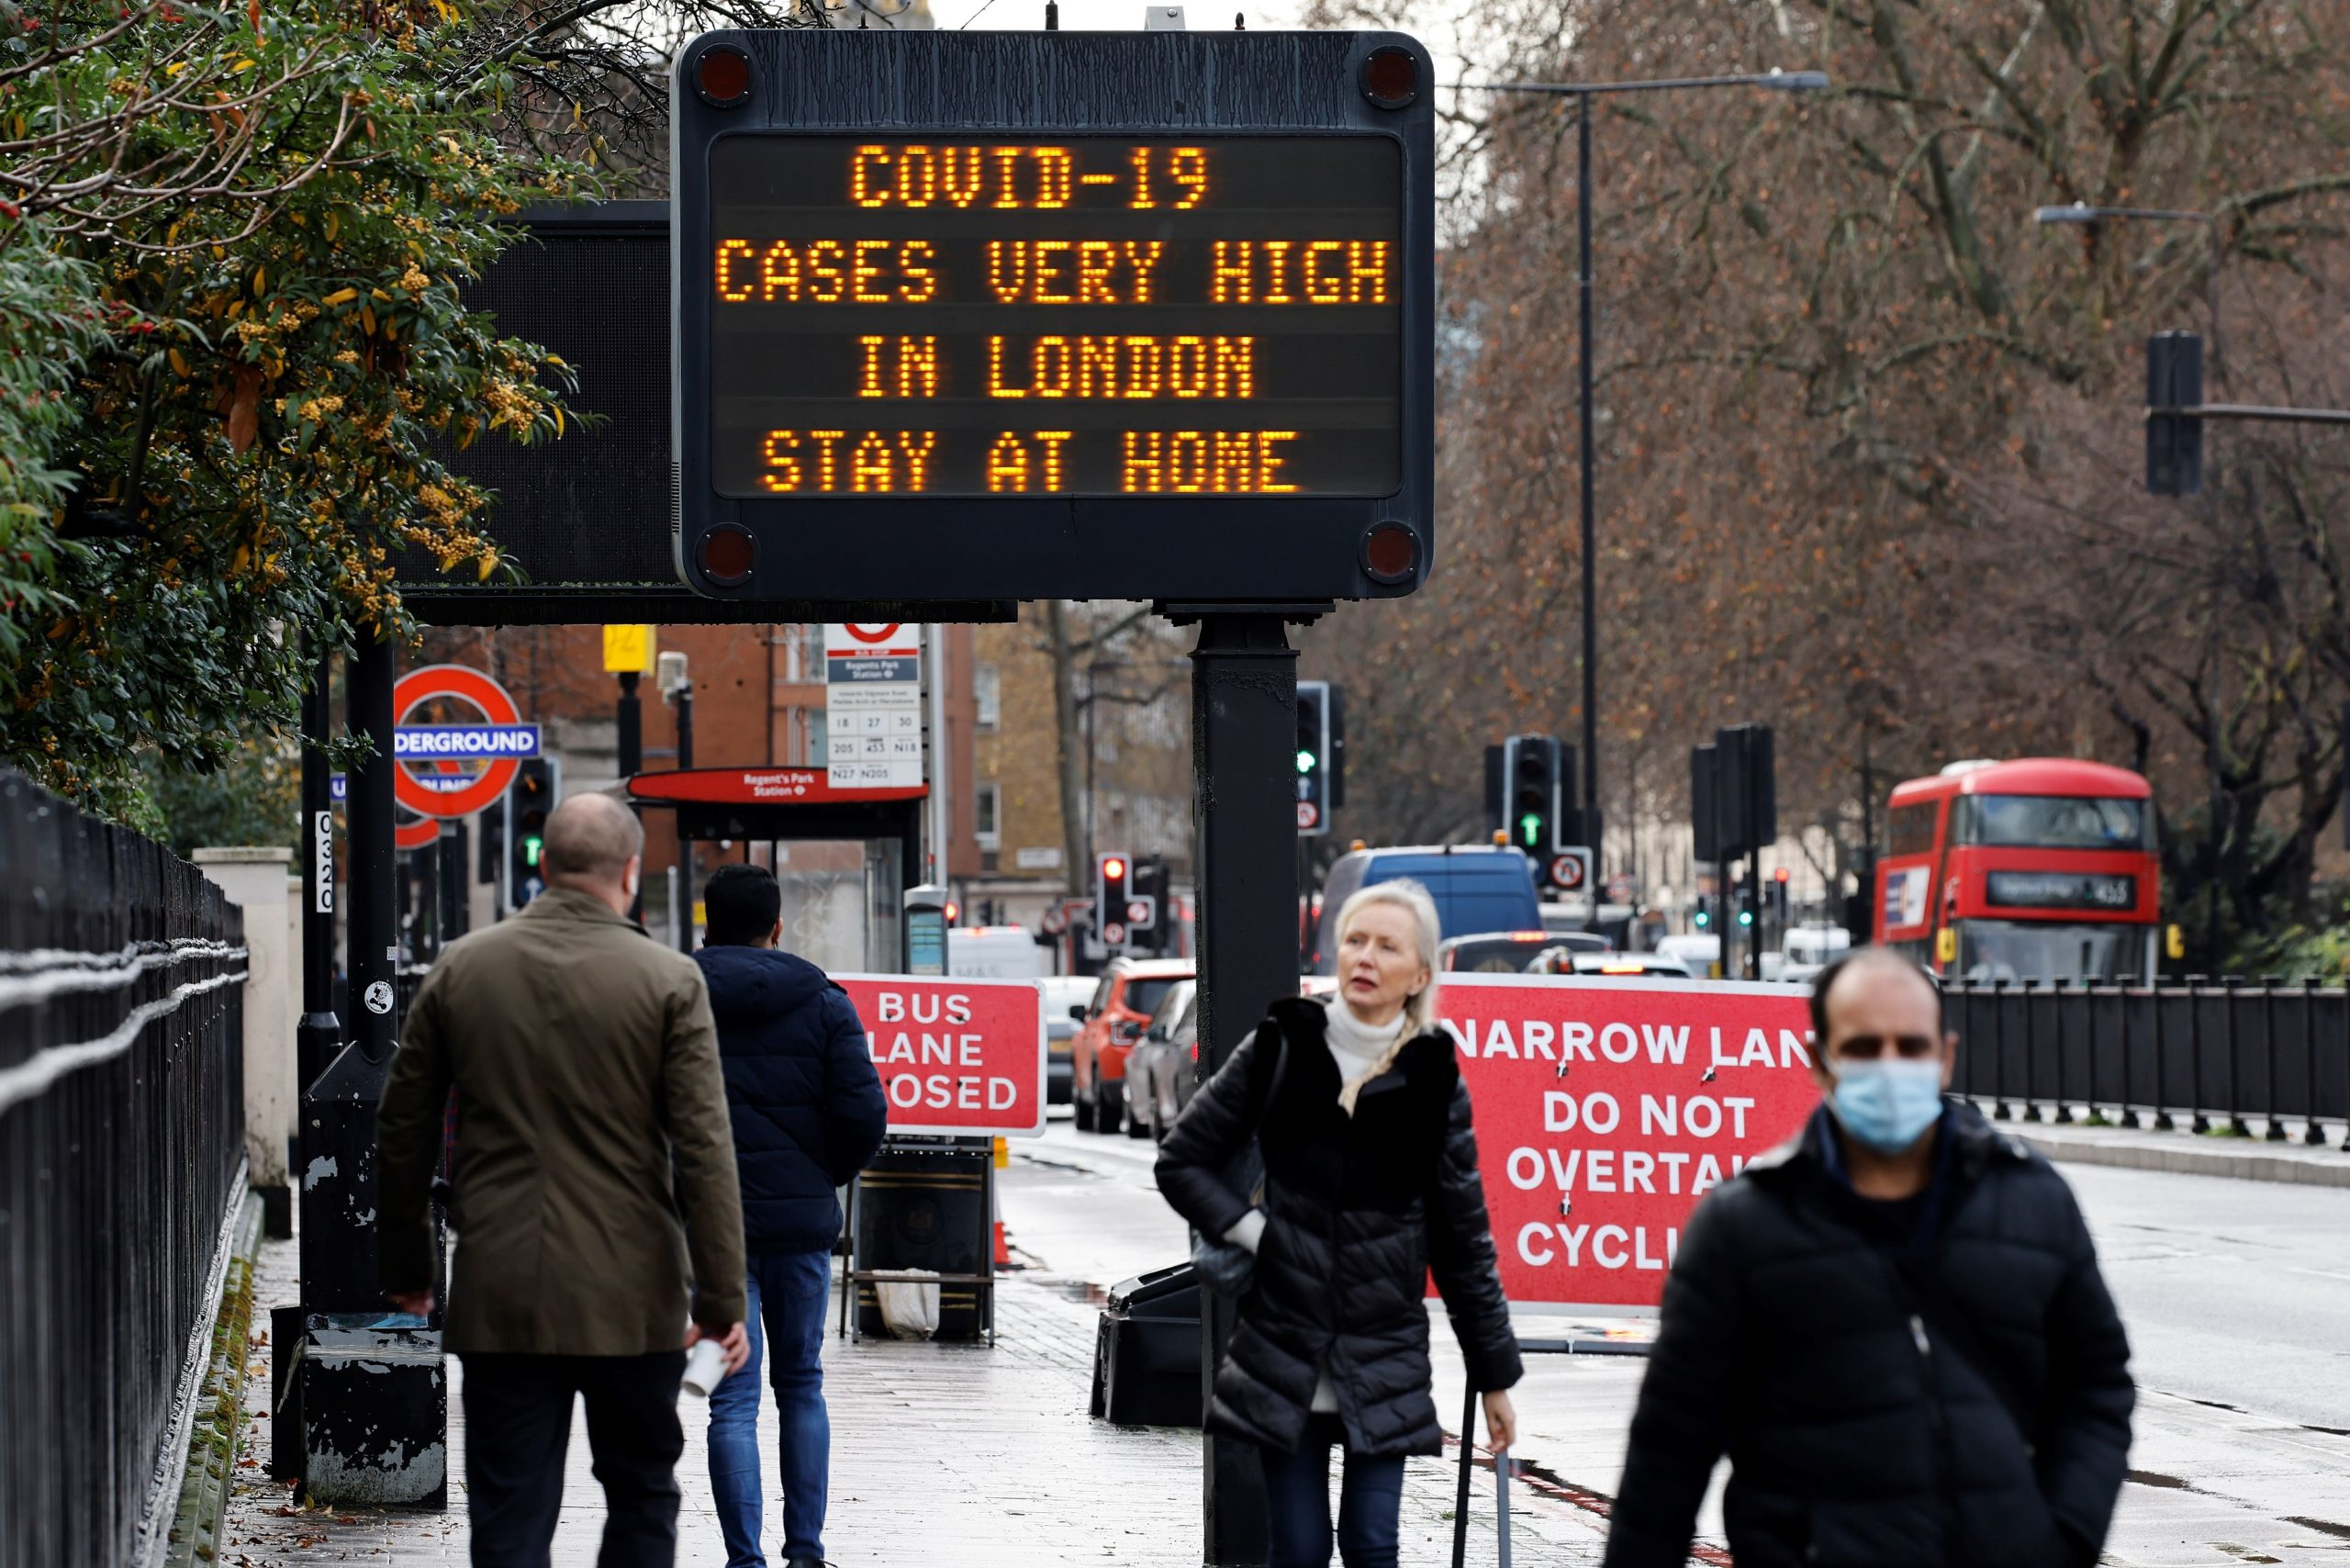 Pedestrians, some wearing a face mask or covering due to the pandemic, walk past a sign alerting people that coronavirus cases are on the rise in central London on Wednesday. (Tolga Akmen/AFP via Getty Images)